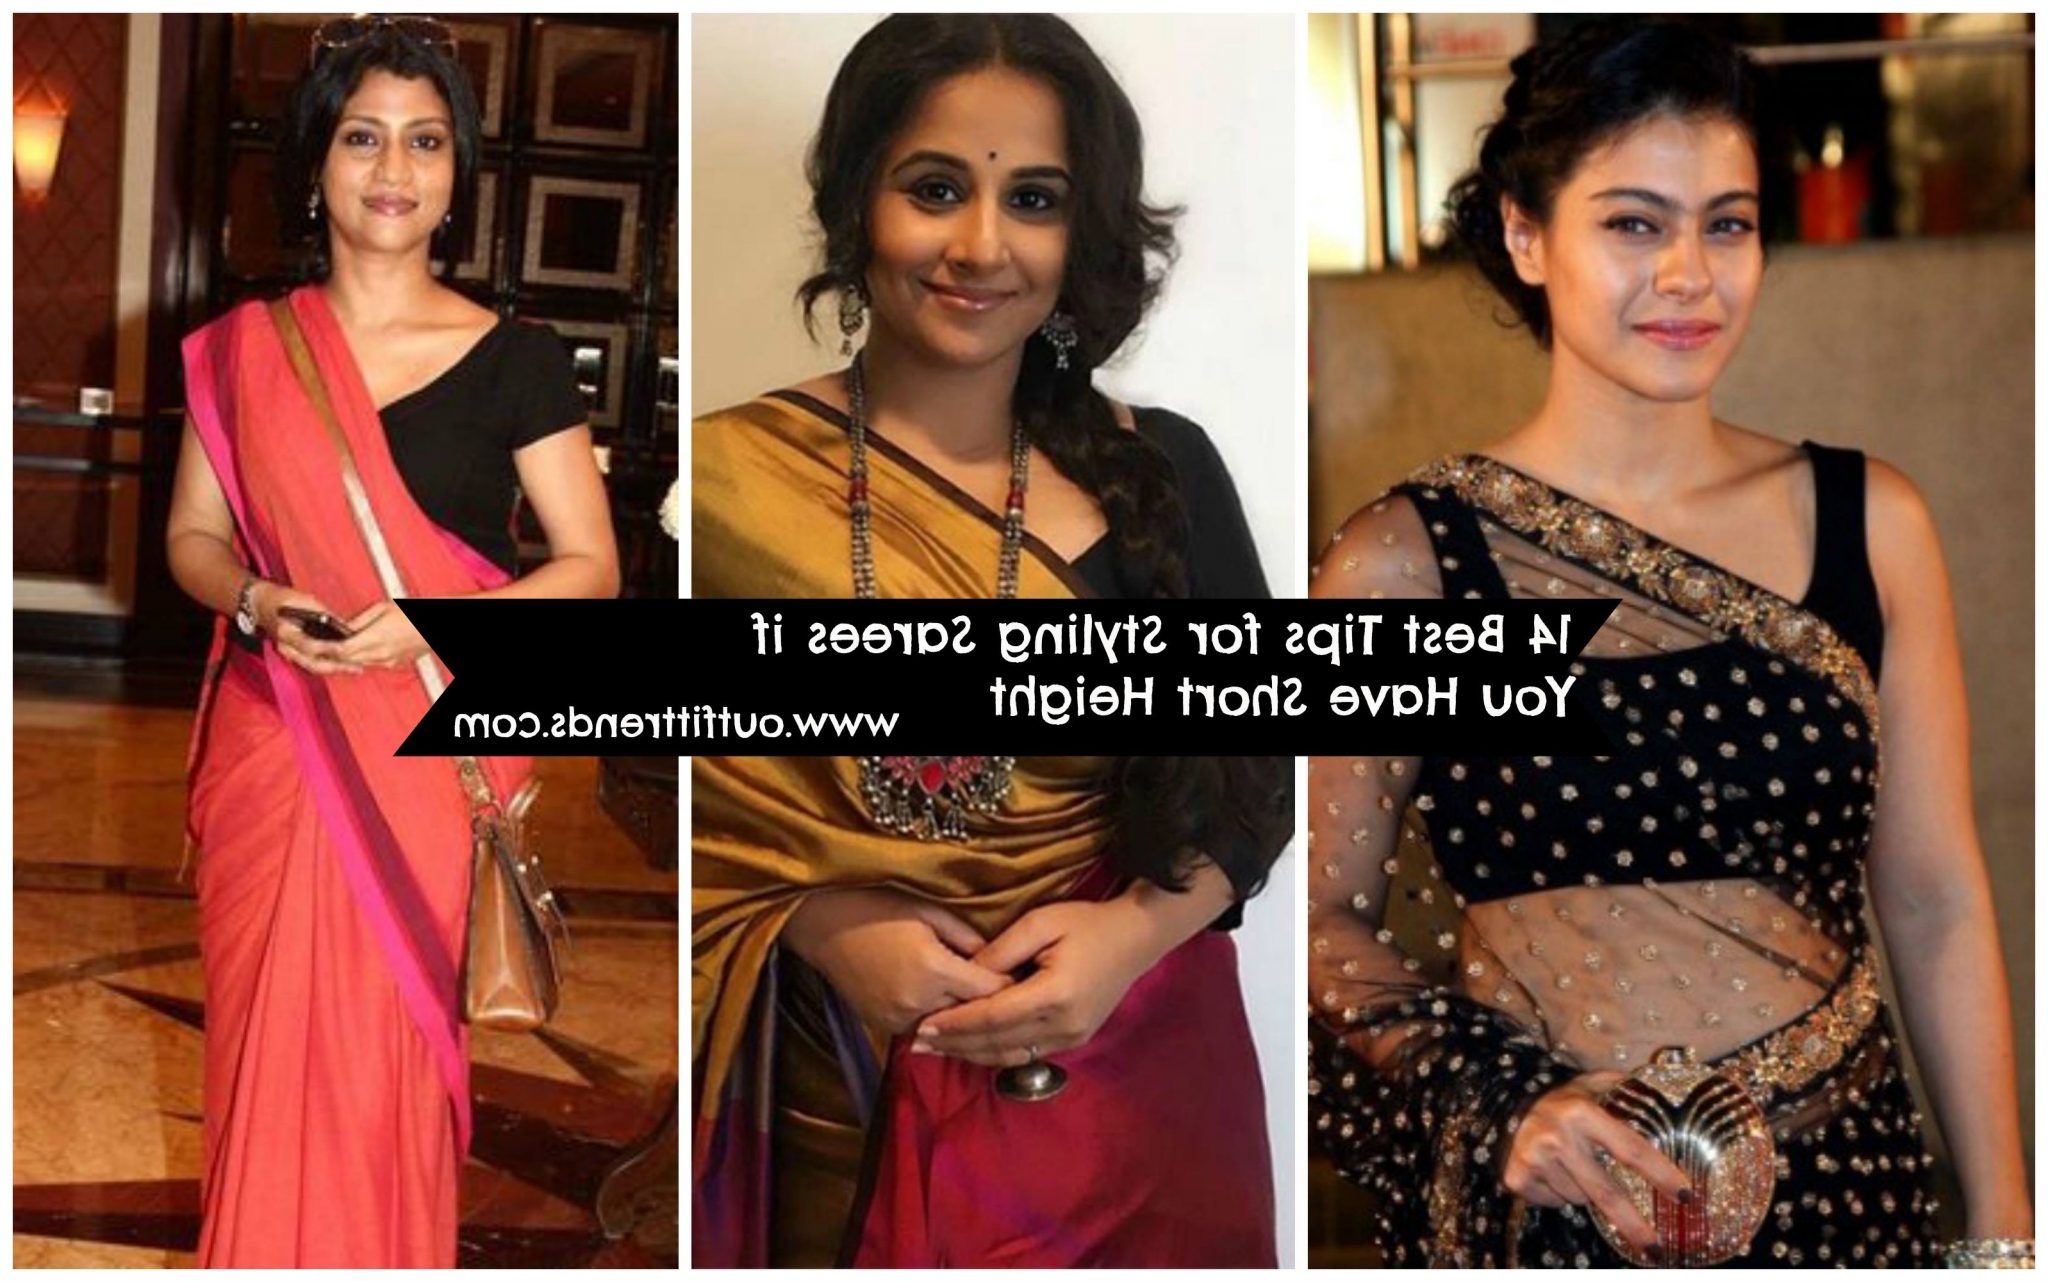 How To Wear Saree For Short Height? 14 Pro Tips For Short Girls Intended For Short Haircuts For Tall Women (View 25 of 25)